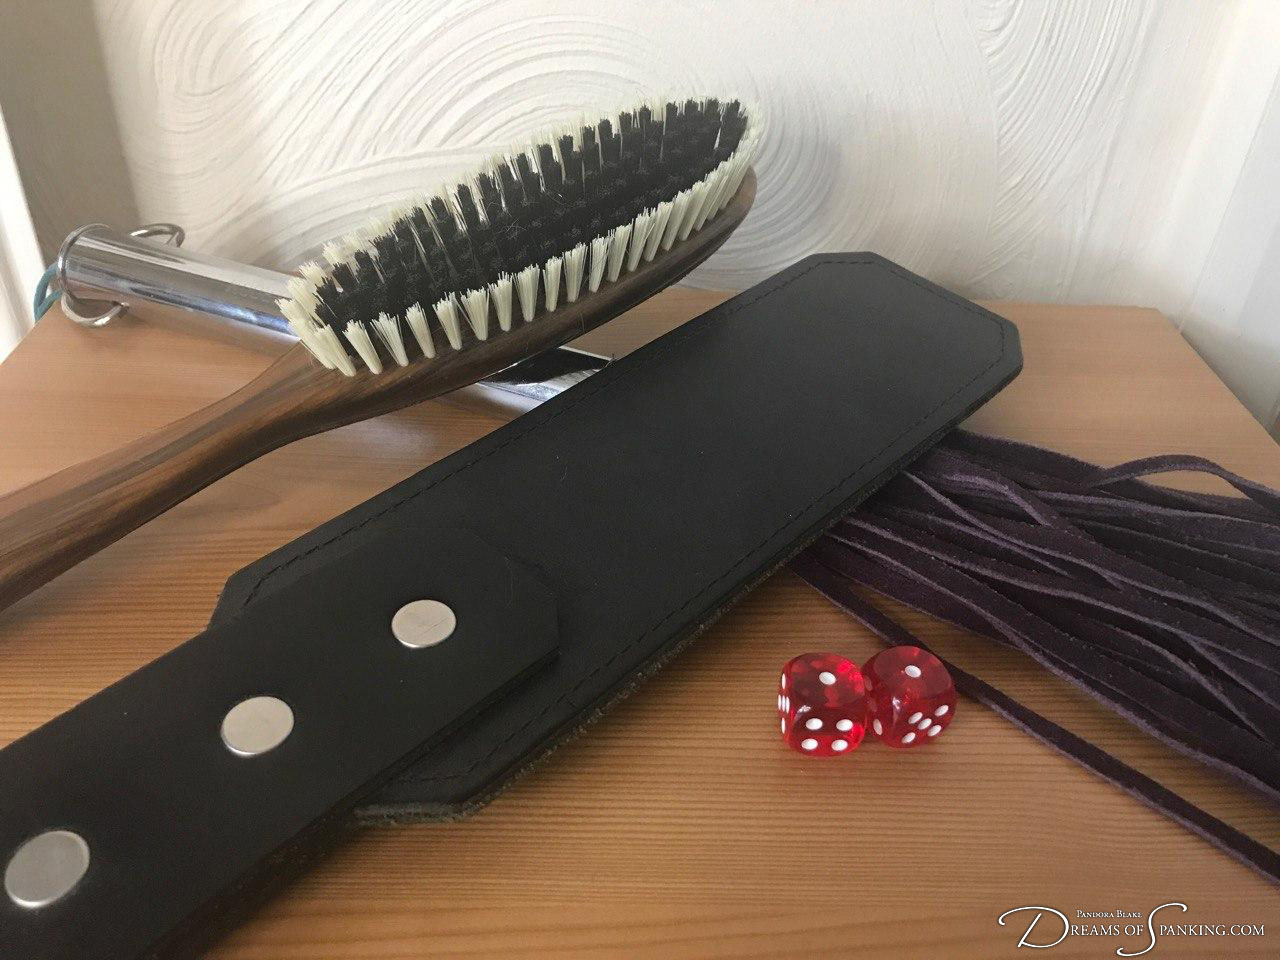 Paddle, flogger and dice at Dreams of Spanking